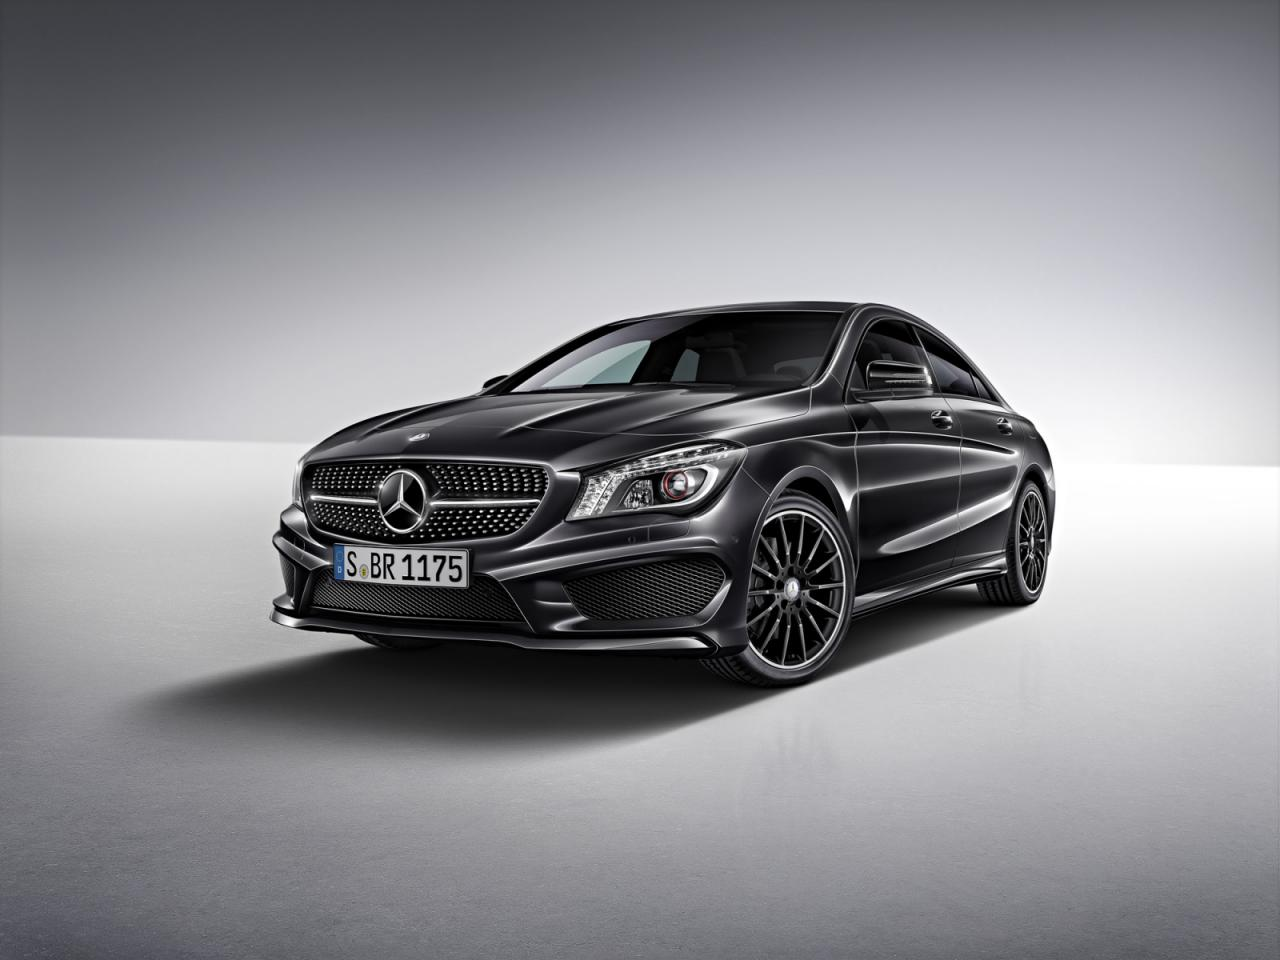 13 Price Of Upcoming Mercedes Benz CLA Edition 1 In Germany Revealed